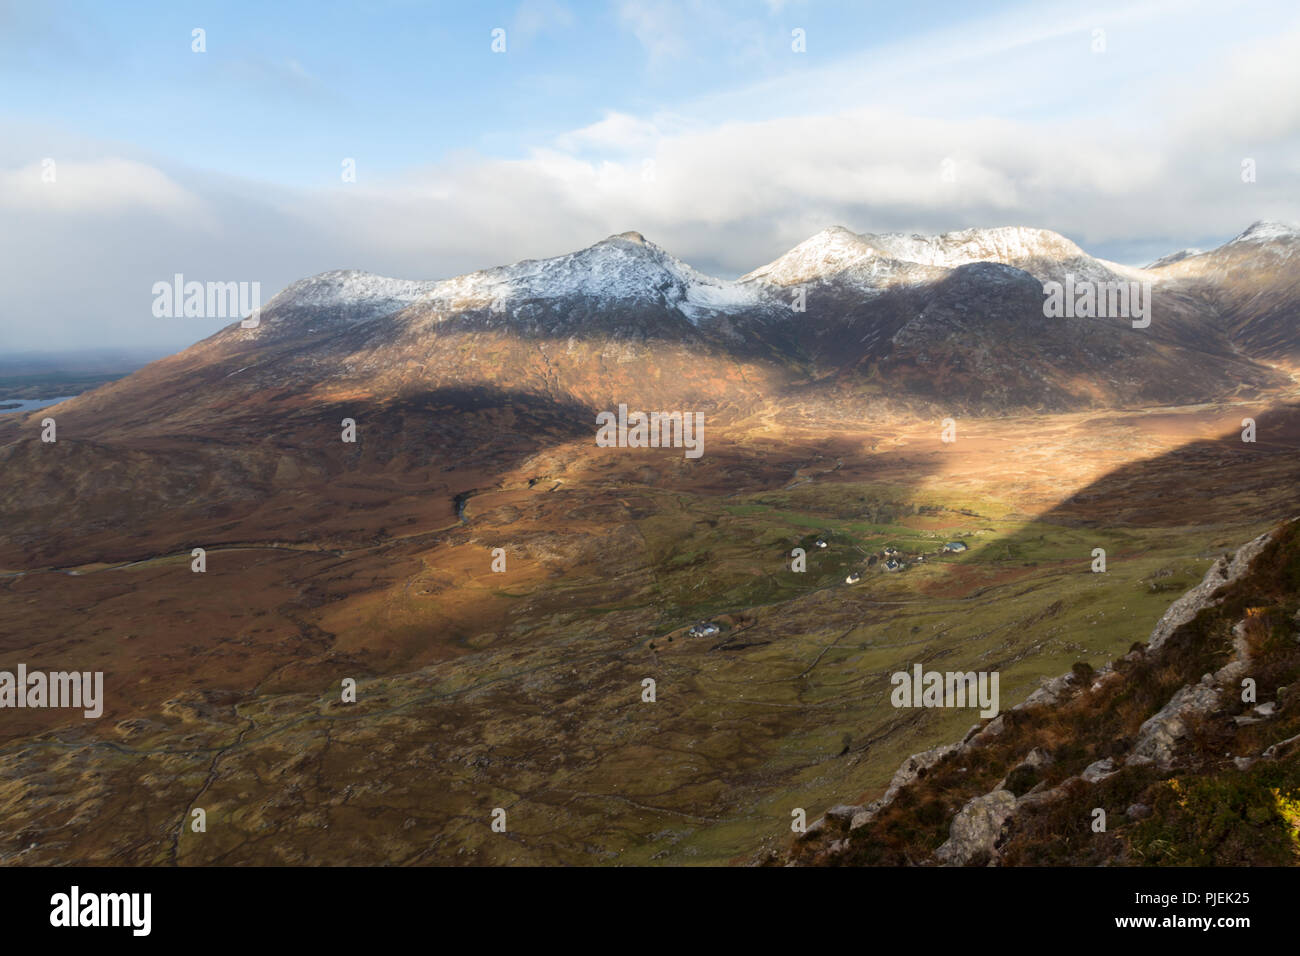 Sunlight and shadow on The Twelve Bens mountains in winter, Connemara, County Galway, Ireland. - Stock Image